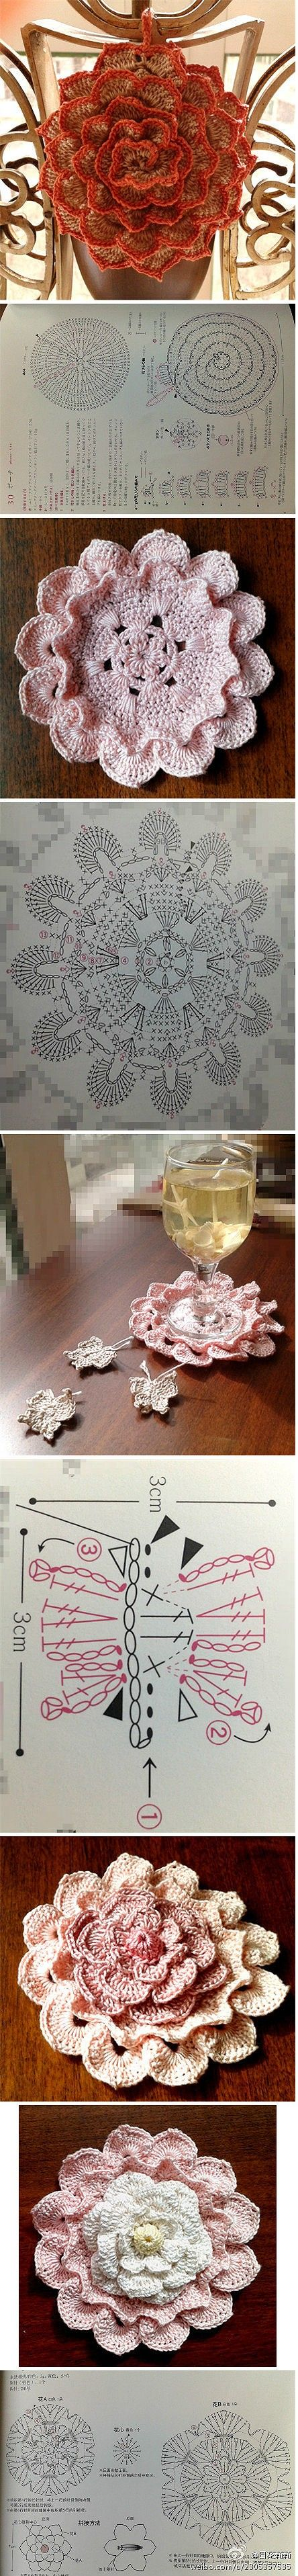 crochet flowers - potholder and coasters and... butterflies!